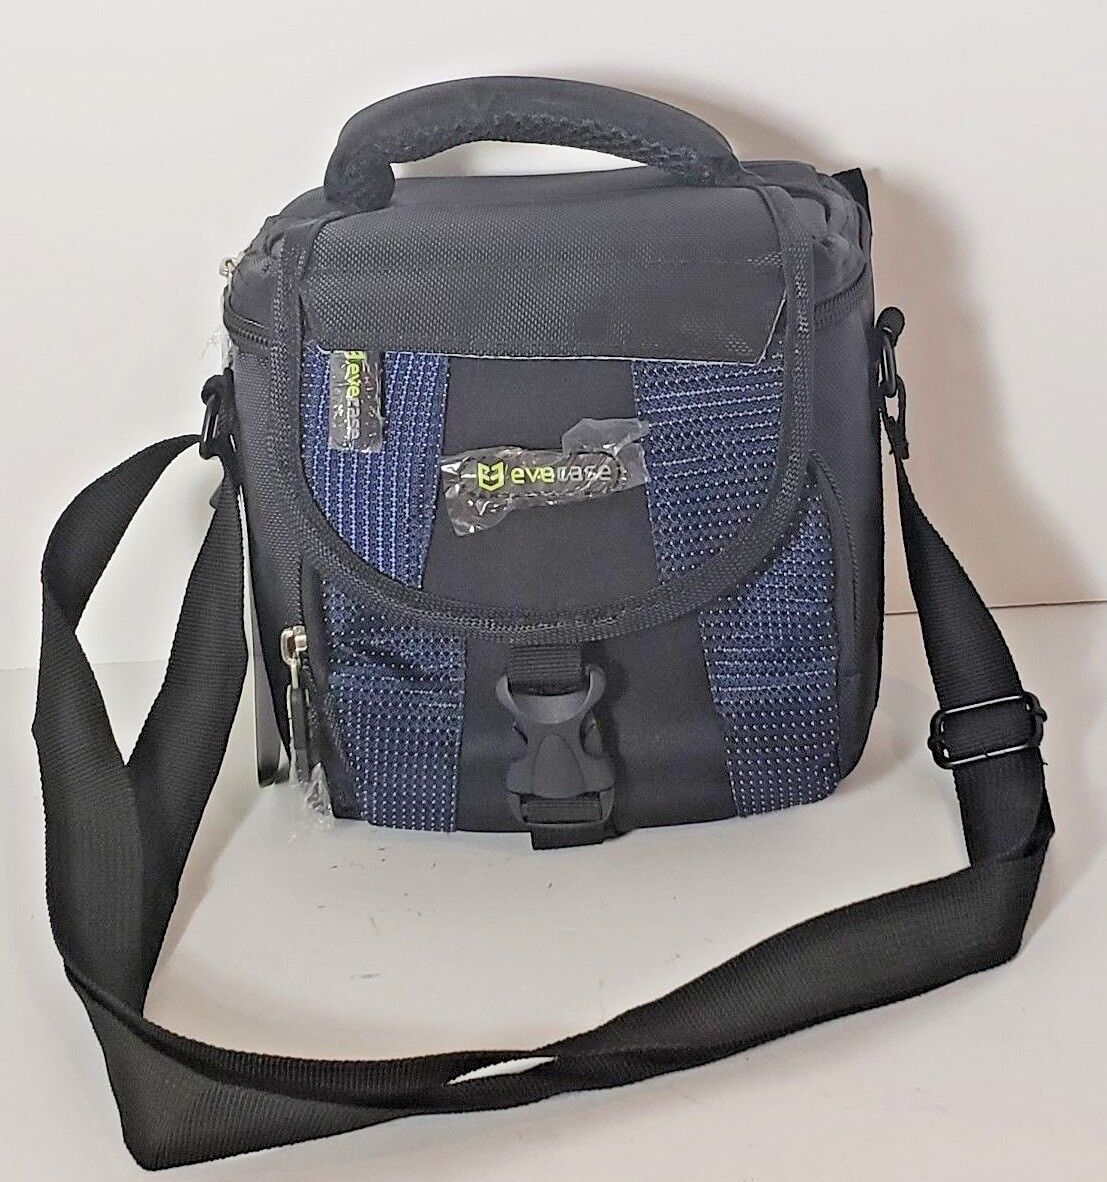 New Evecase Small Camera Bag Adjustable Shoulder Strap Black